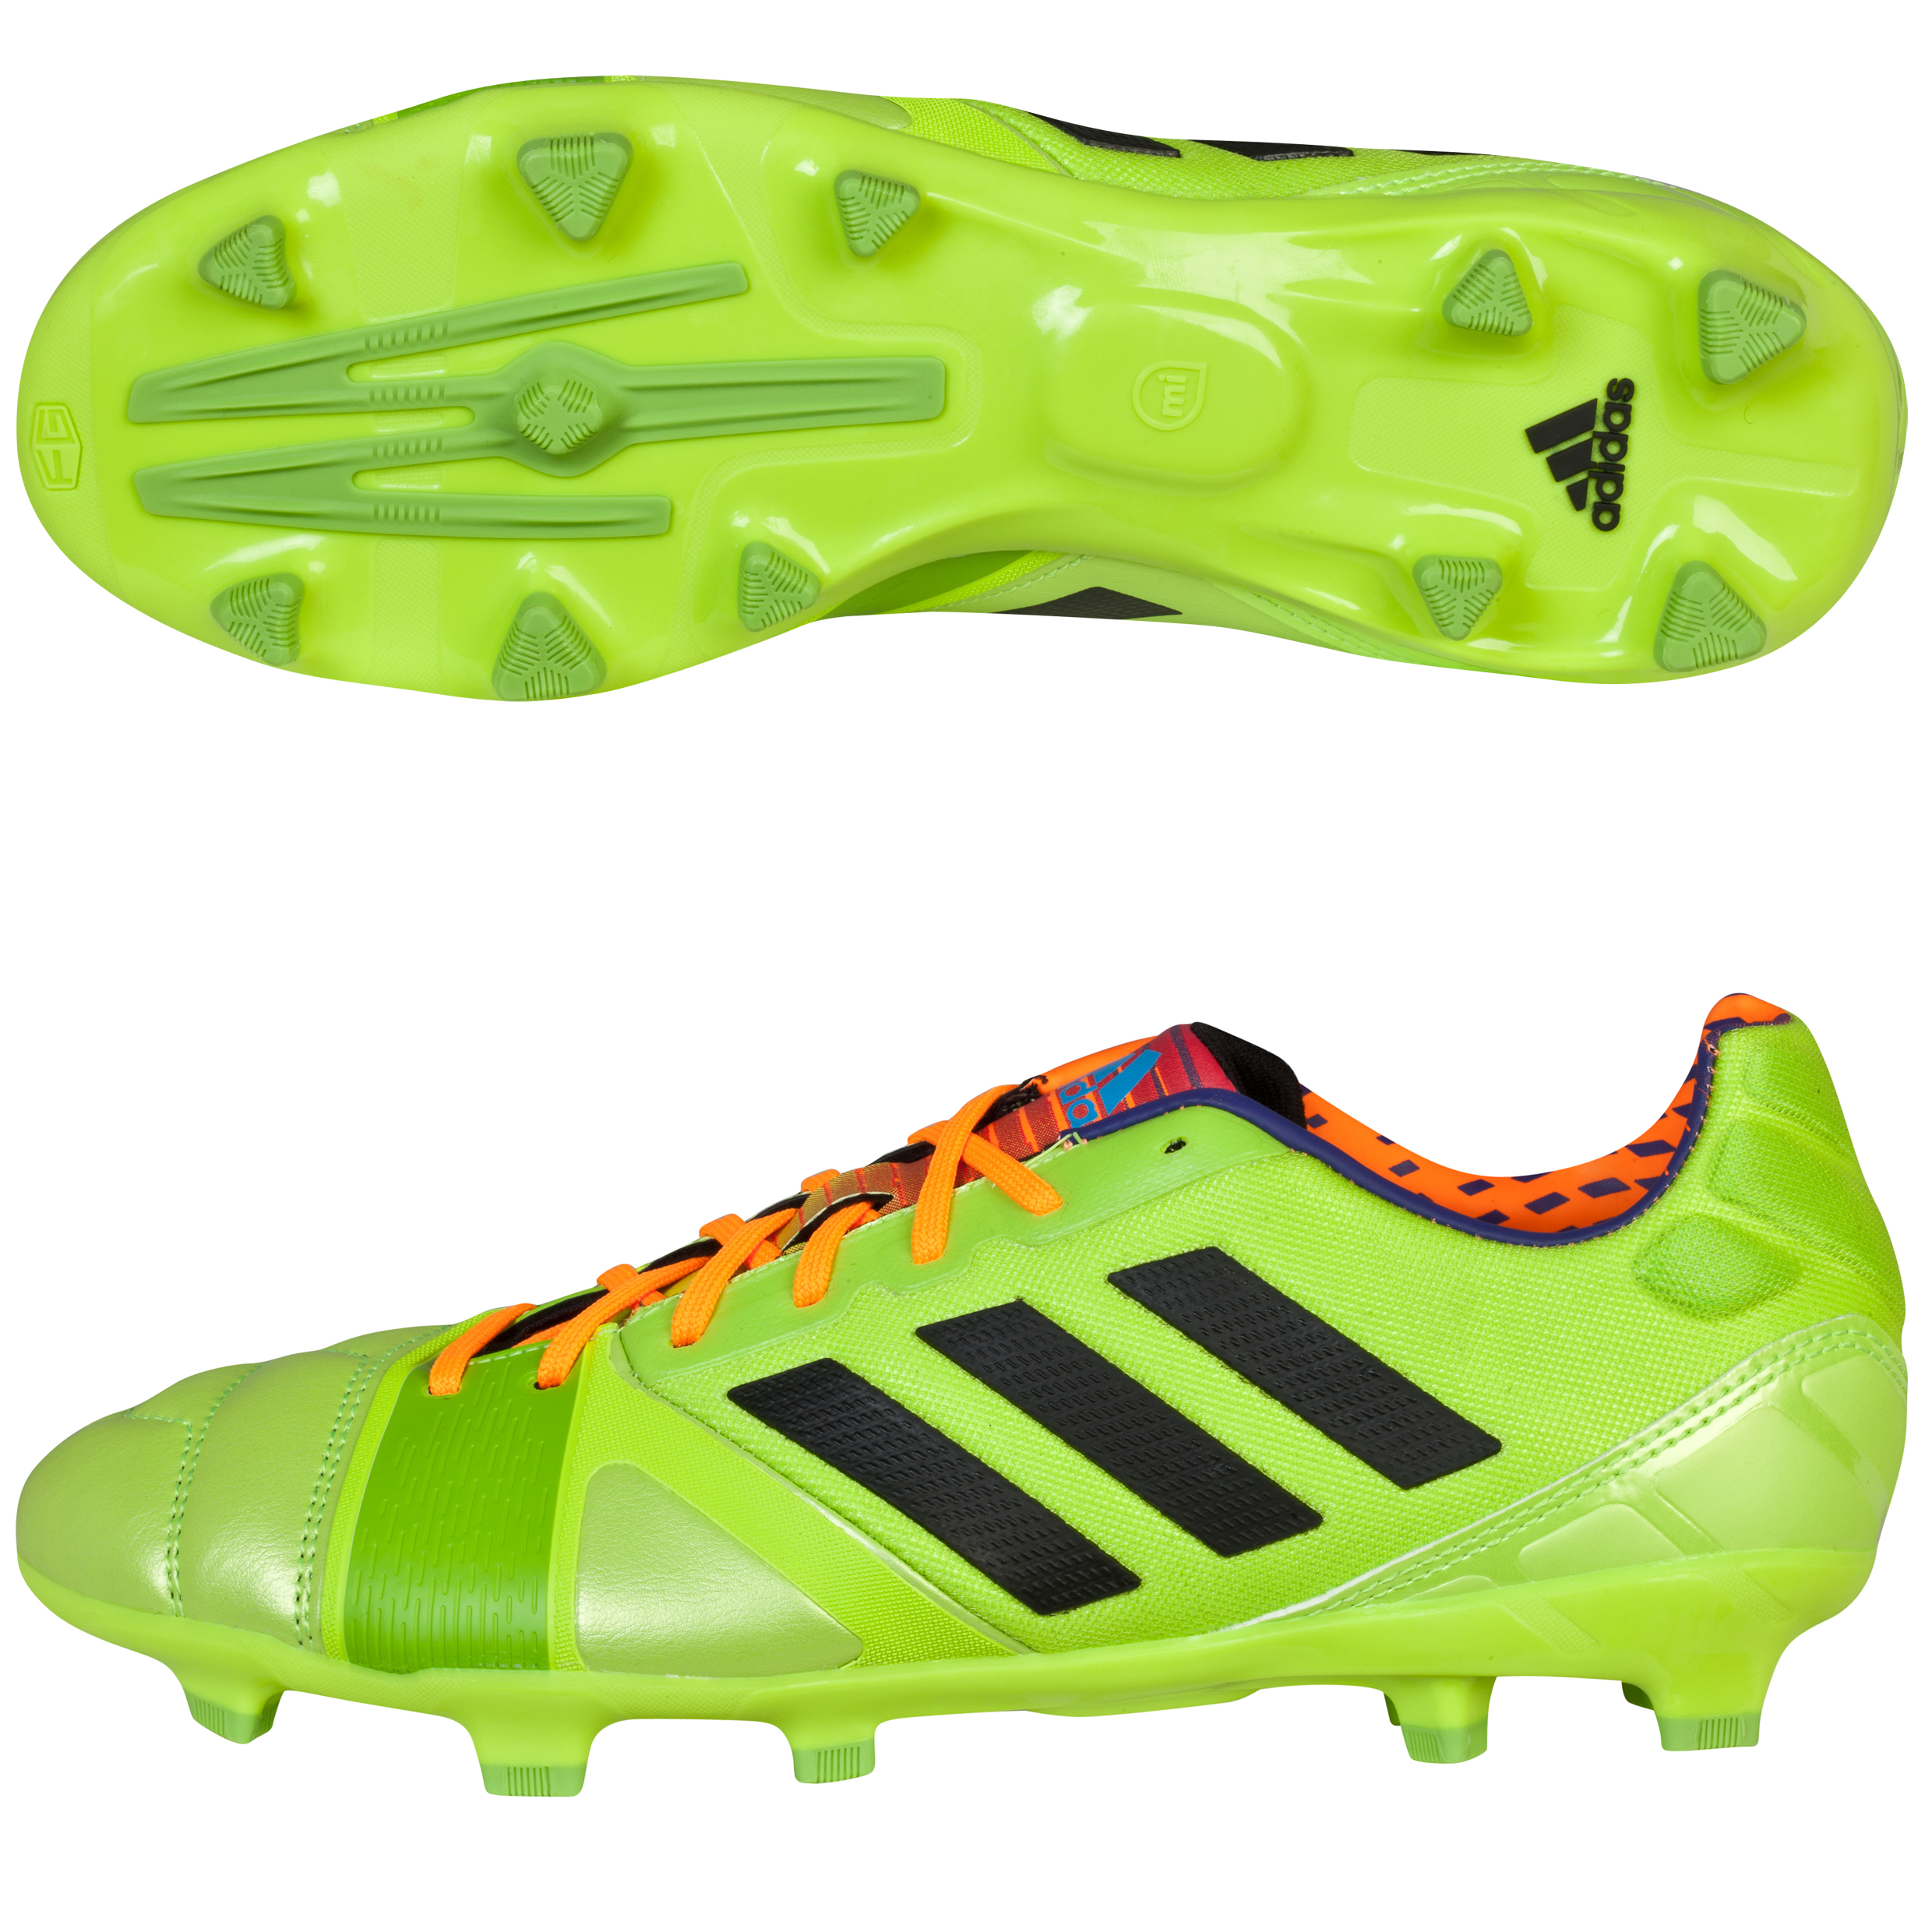 Nitrocharge 2.0 TRX FG Green